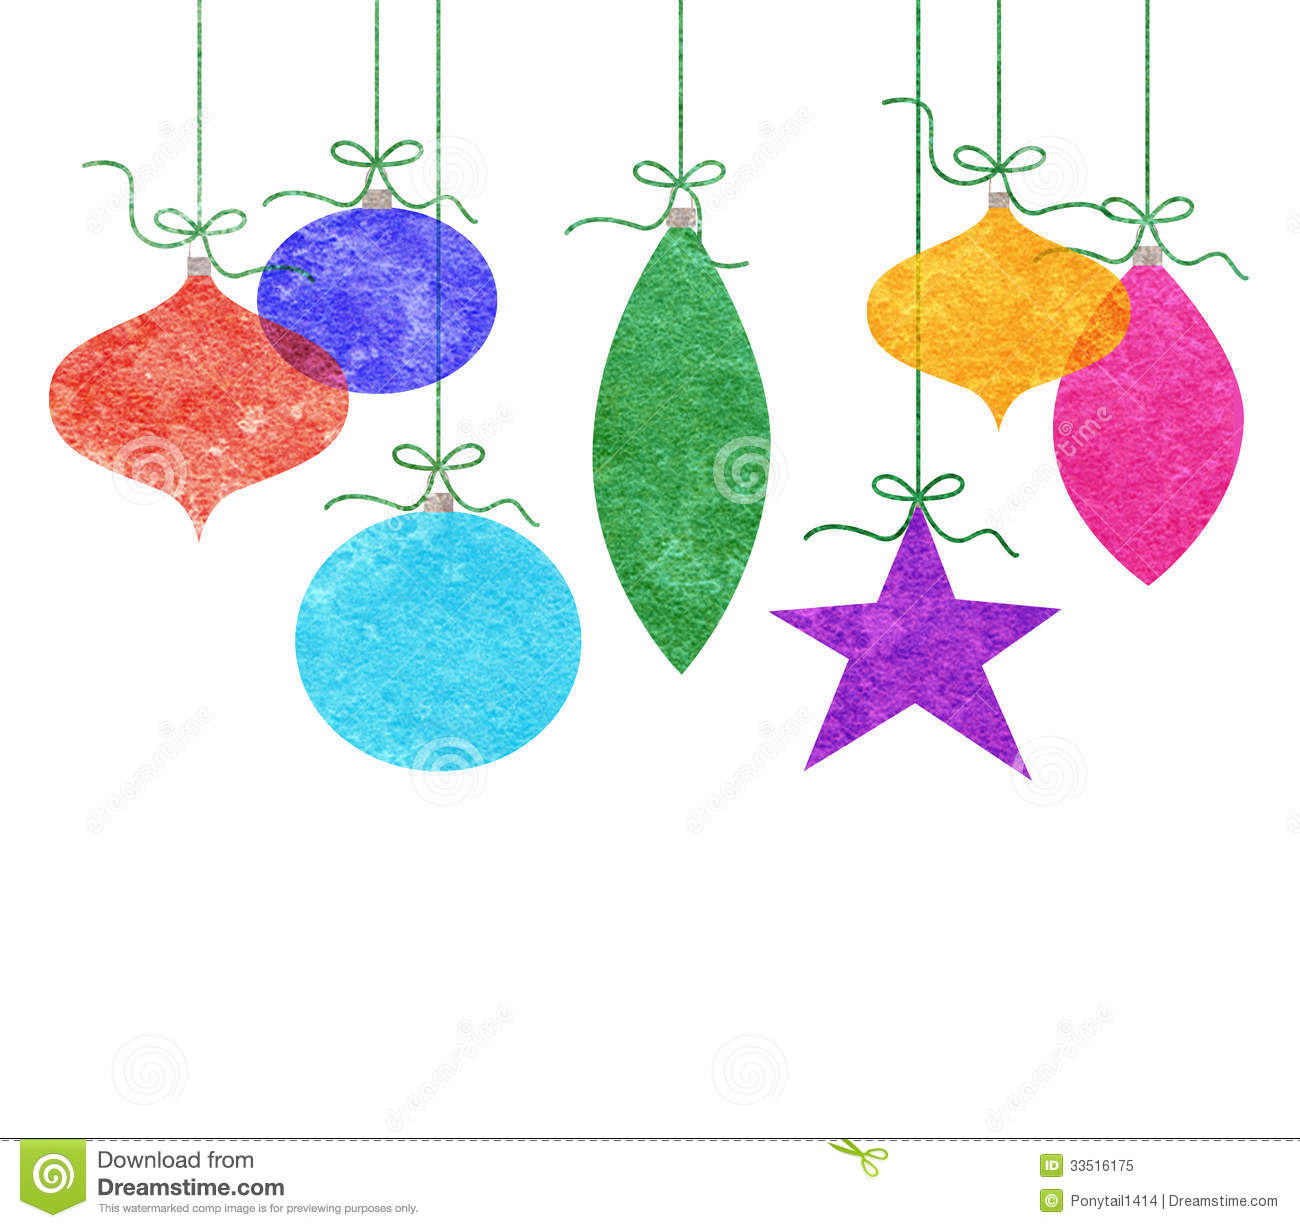 Whimsical Hanging Christmas Ornaments Royalty Free Stock Photo ...